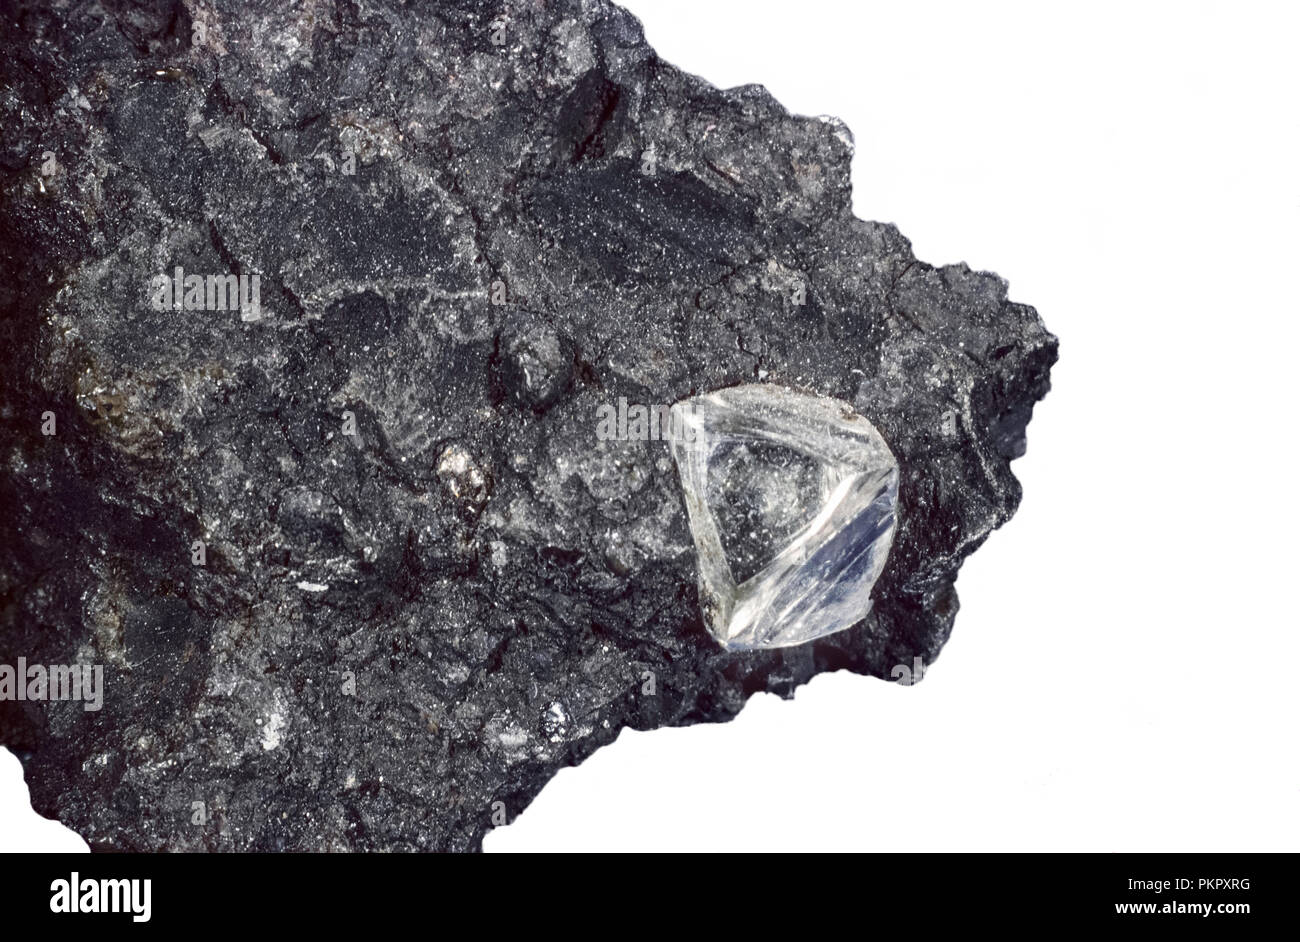 Raw Diamond High Resolution Stock Photography And Images Alamy